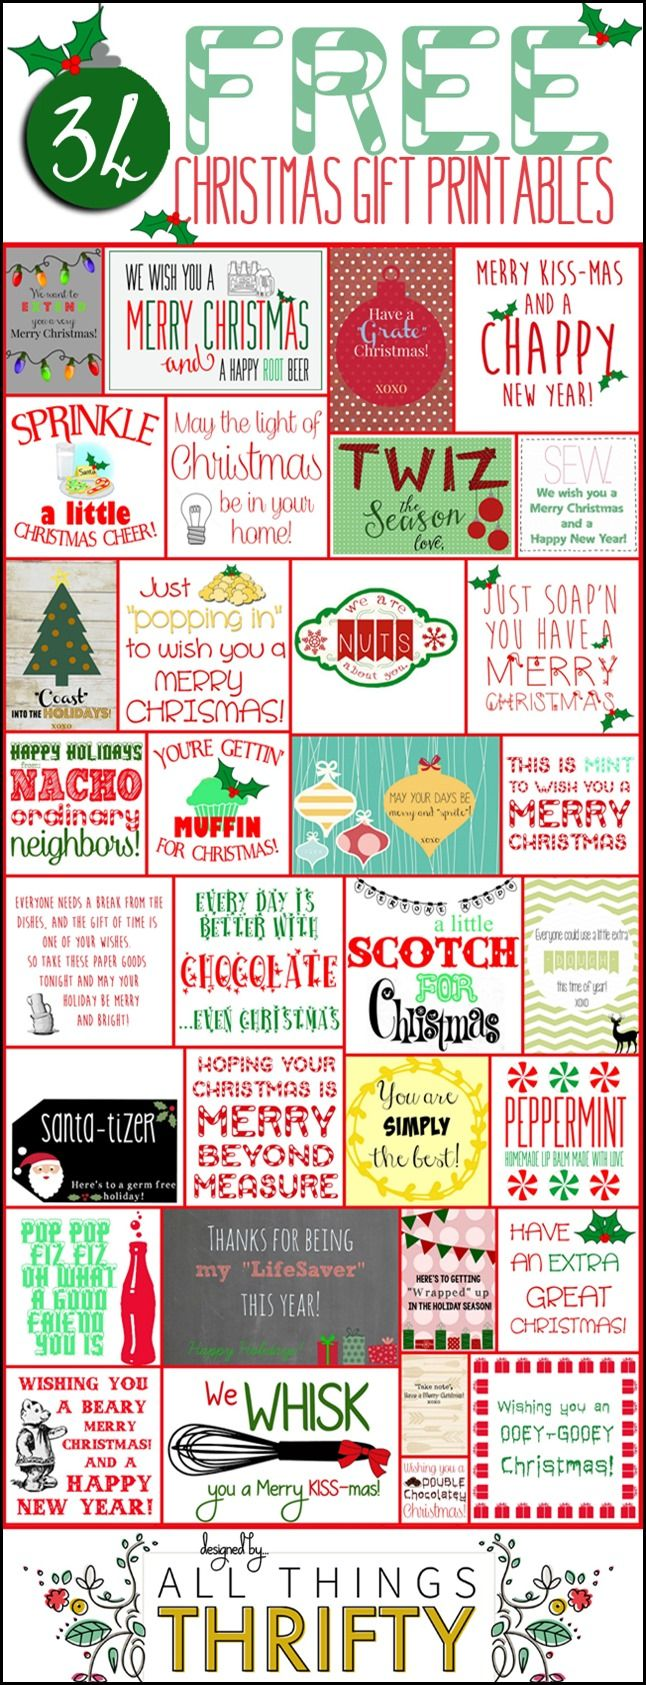 FREE-PRINTABLES-FOR-CHRISTMAS-GIFTS.jpg